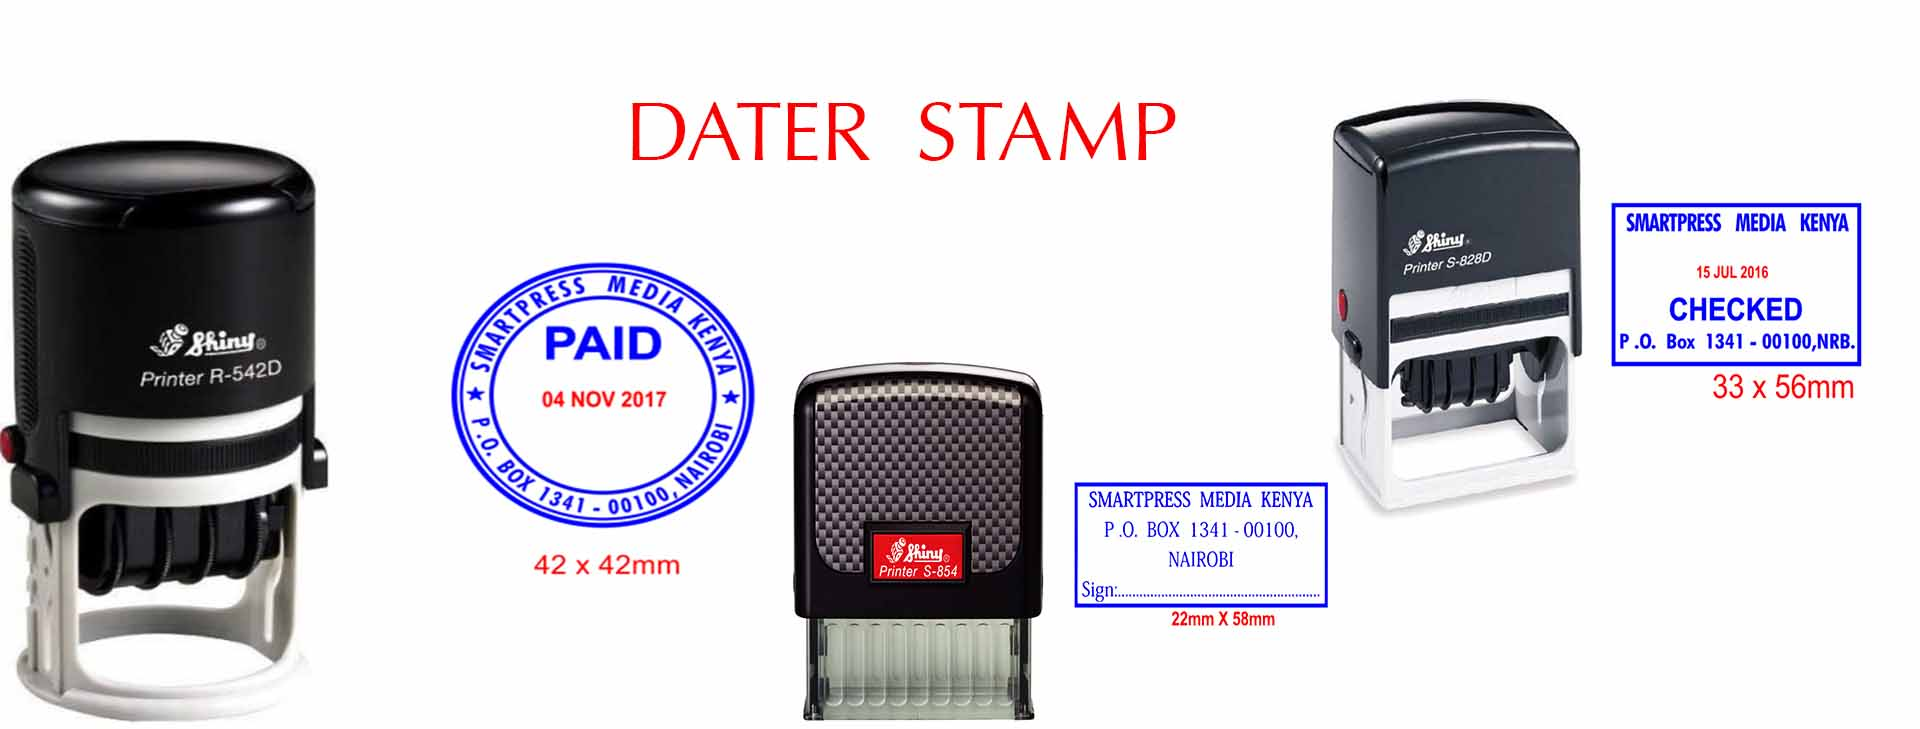 DaterStamps.jpg